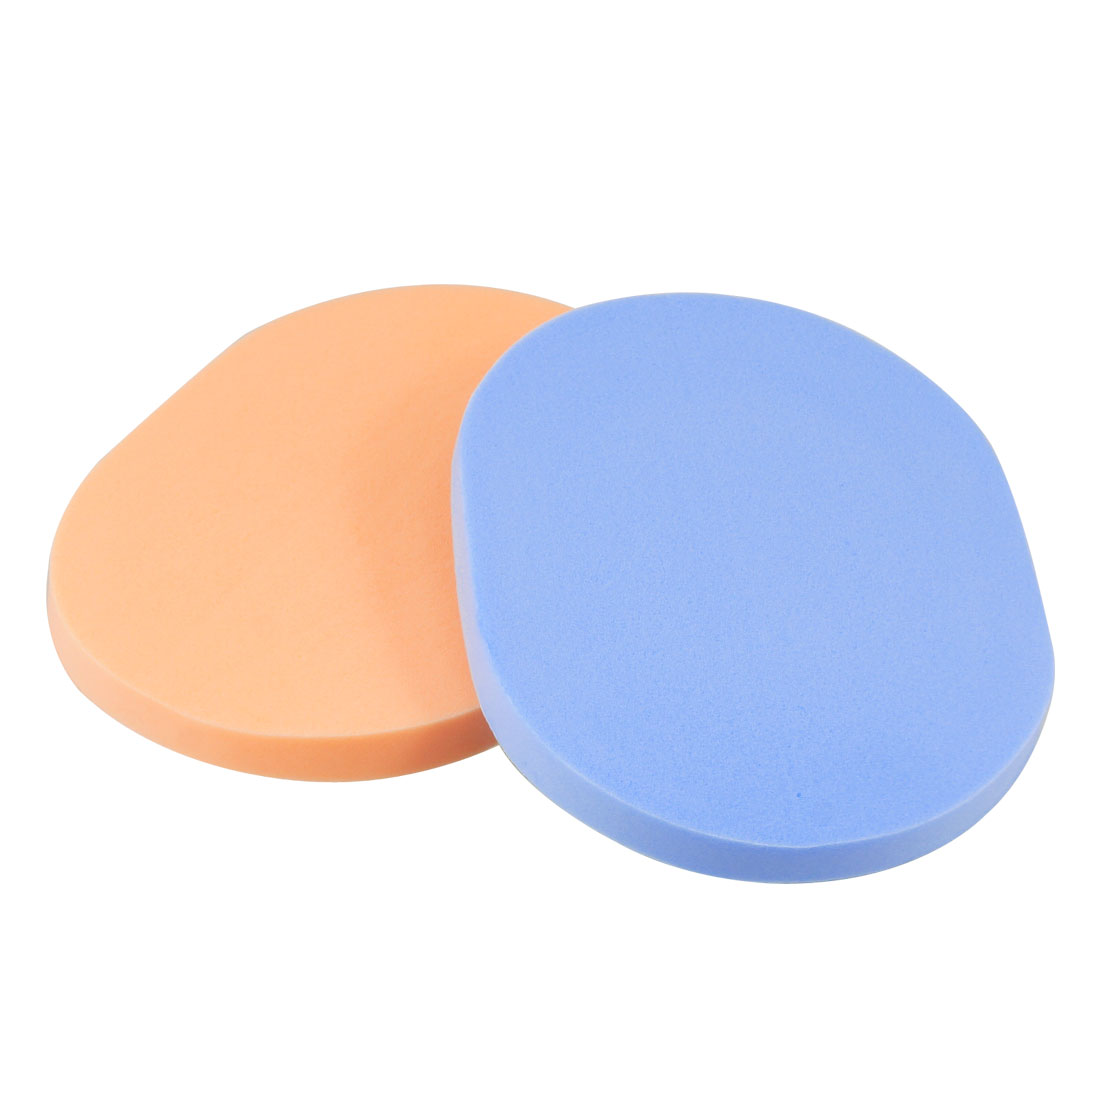 Blue Orange Oval Shaped Sponge Makeup Cosmetic Face Pad 2 pcs